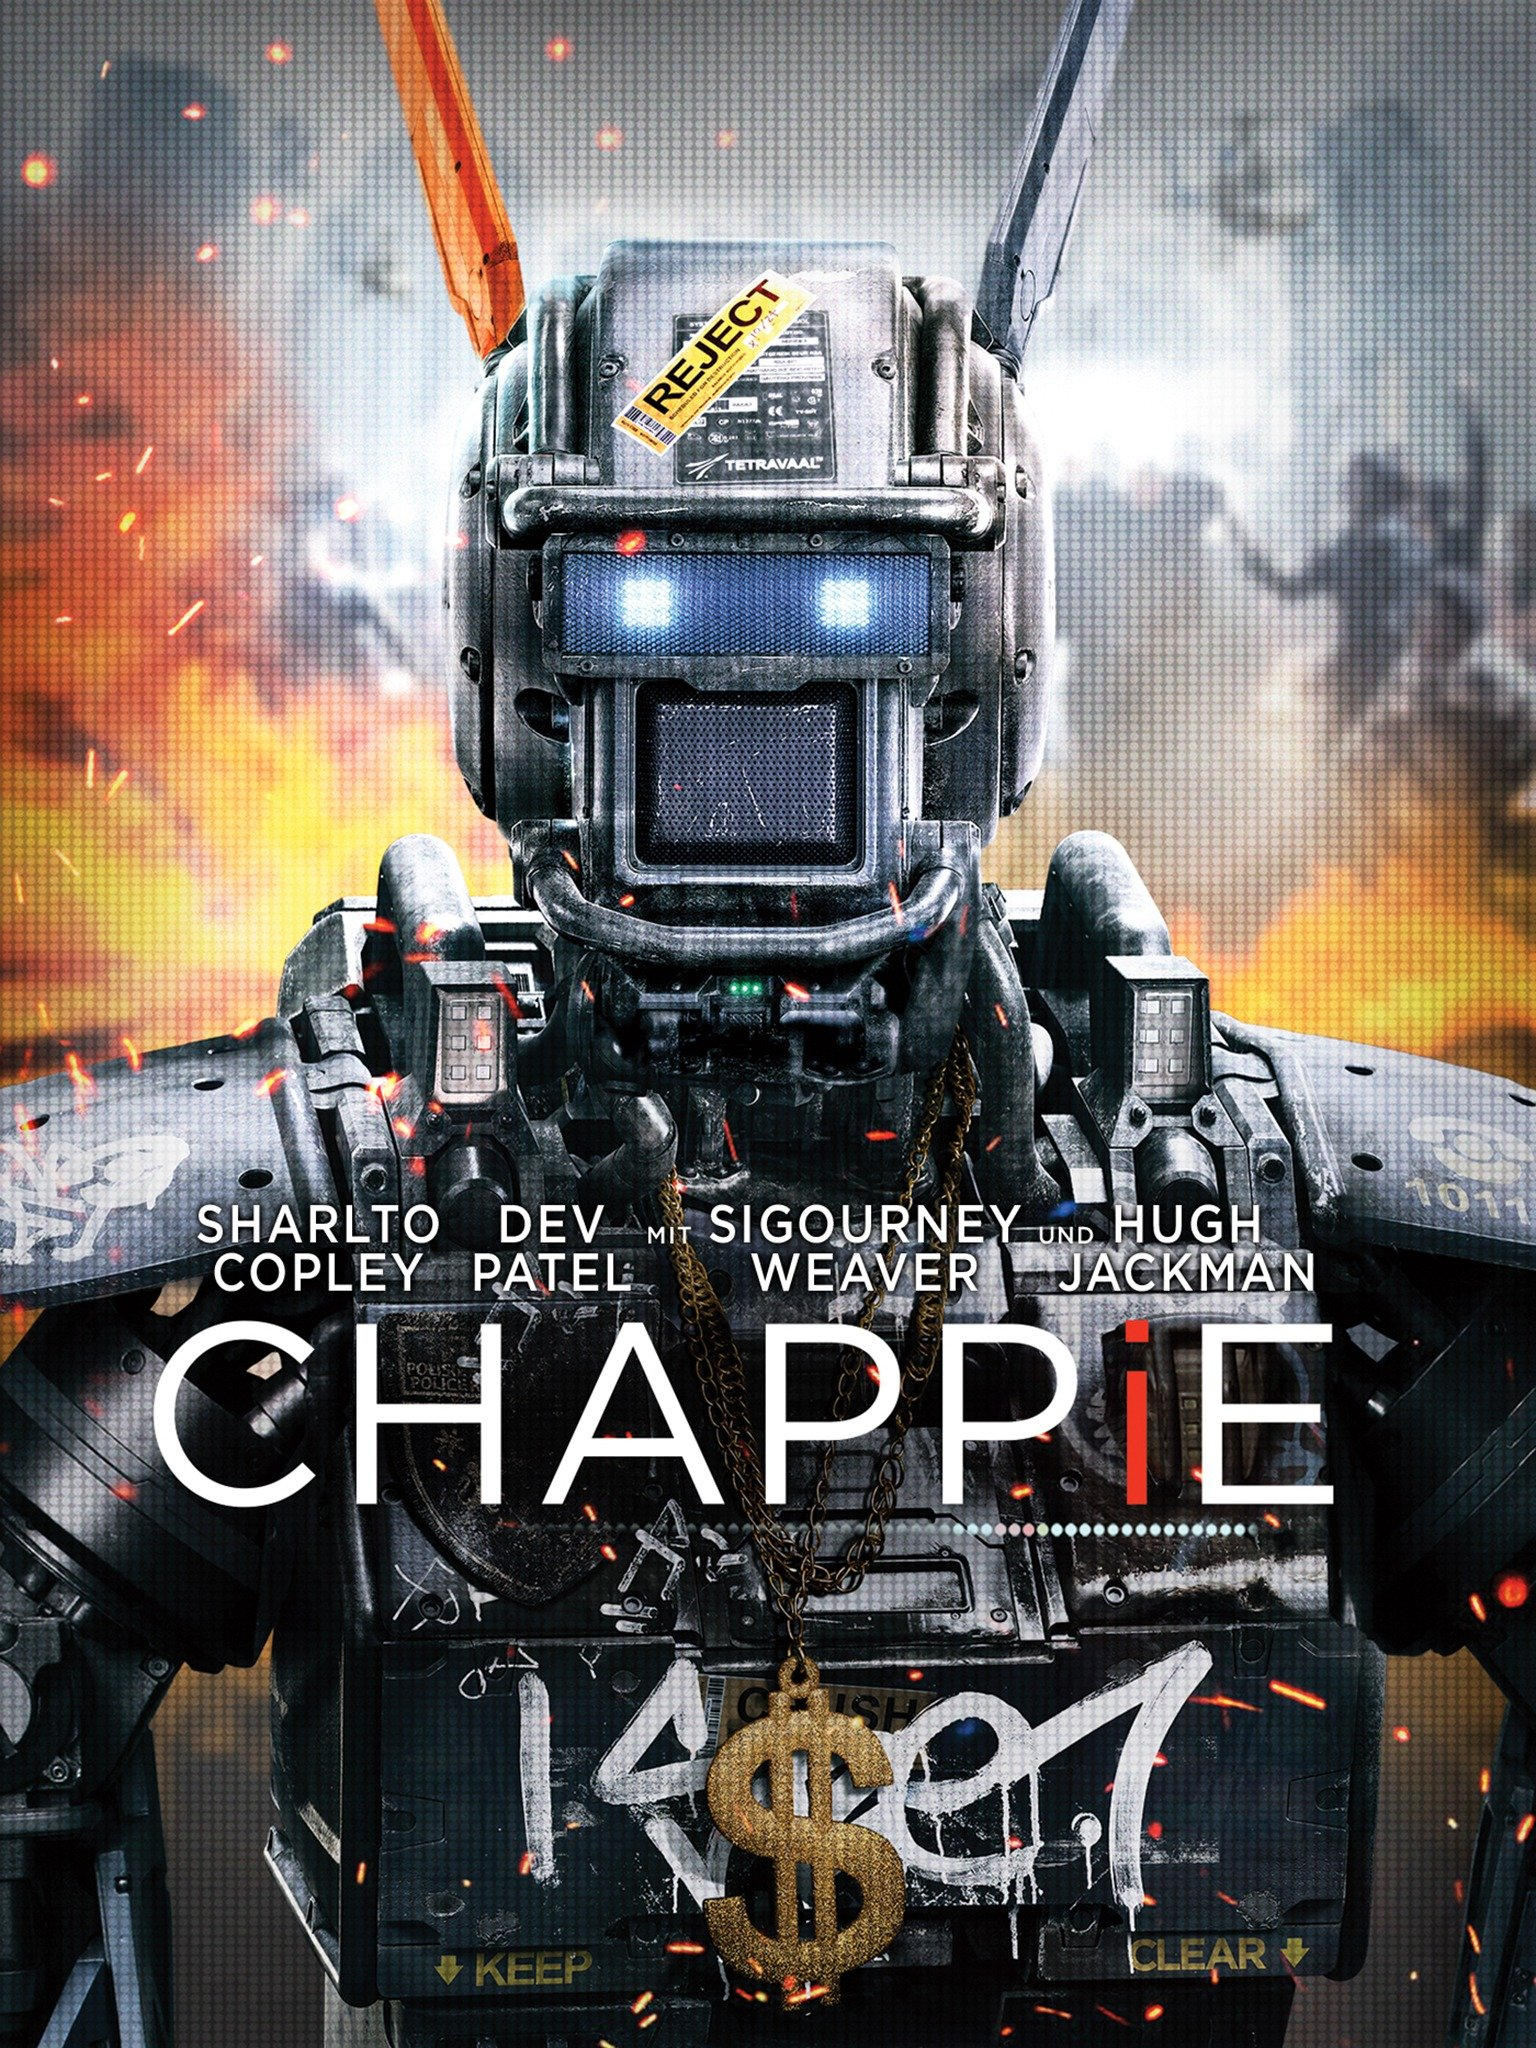 Chappie (2015) - Rotten Tomatoes